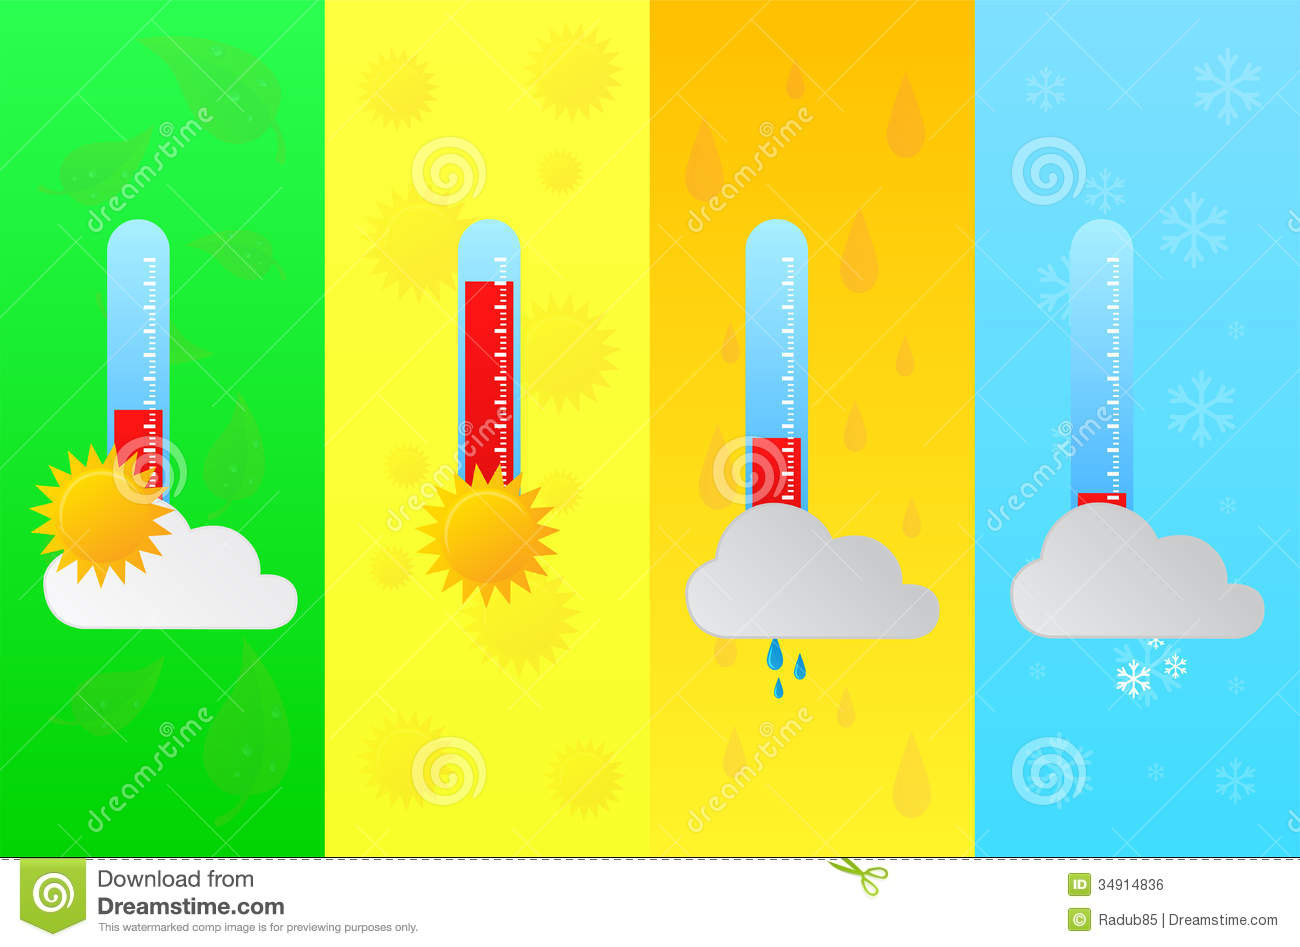 Royalty Free Stock Image Four Seasons Forecast Temperature Thermometer Thermometers Indicators Vector Illustration Image34914836 on Four Seasons Clip Art